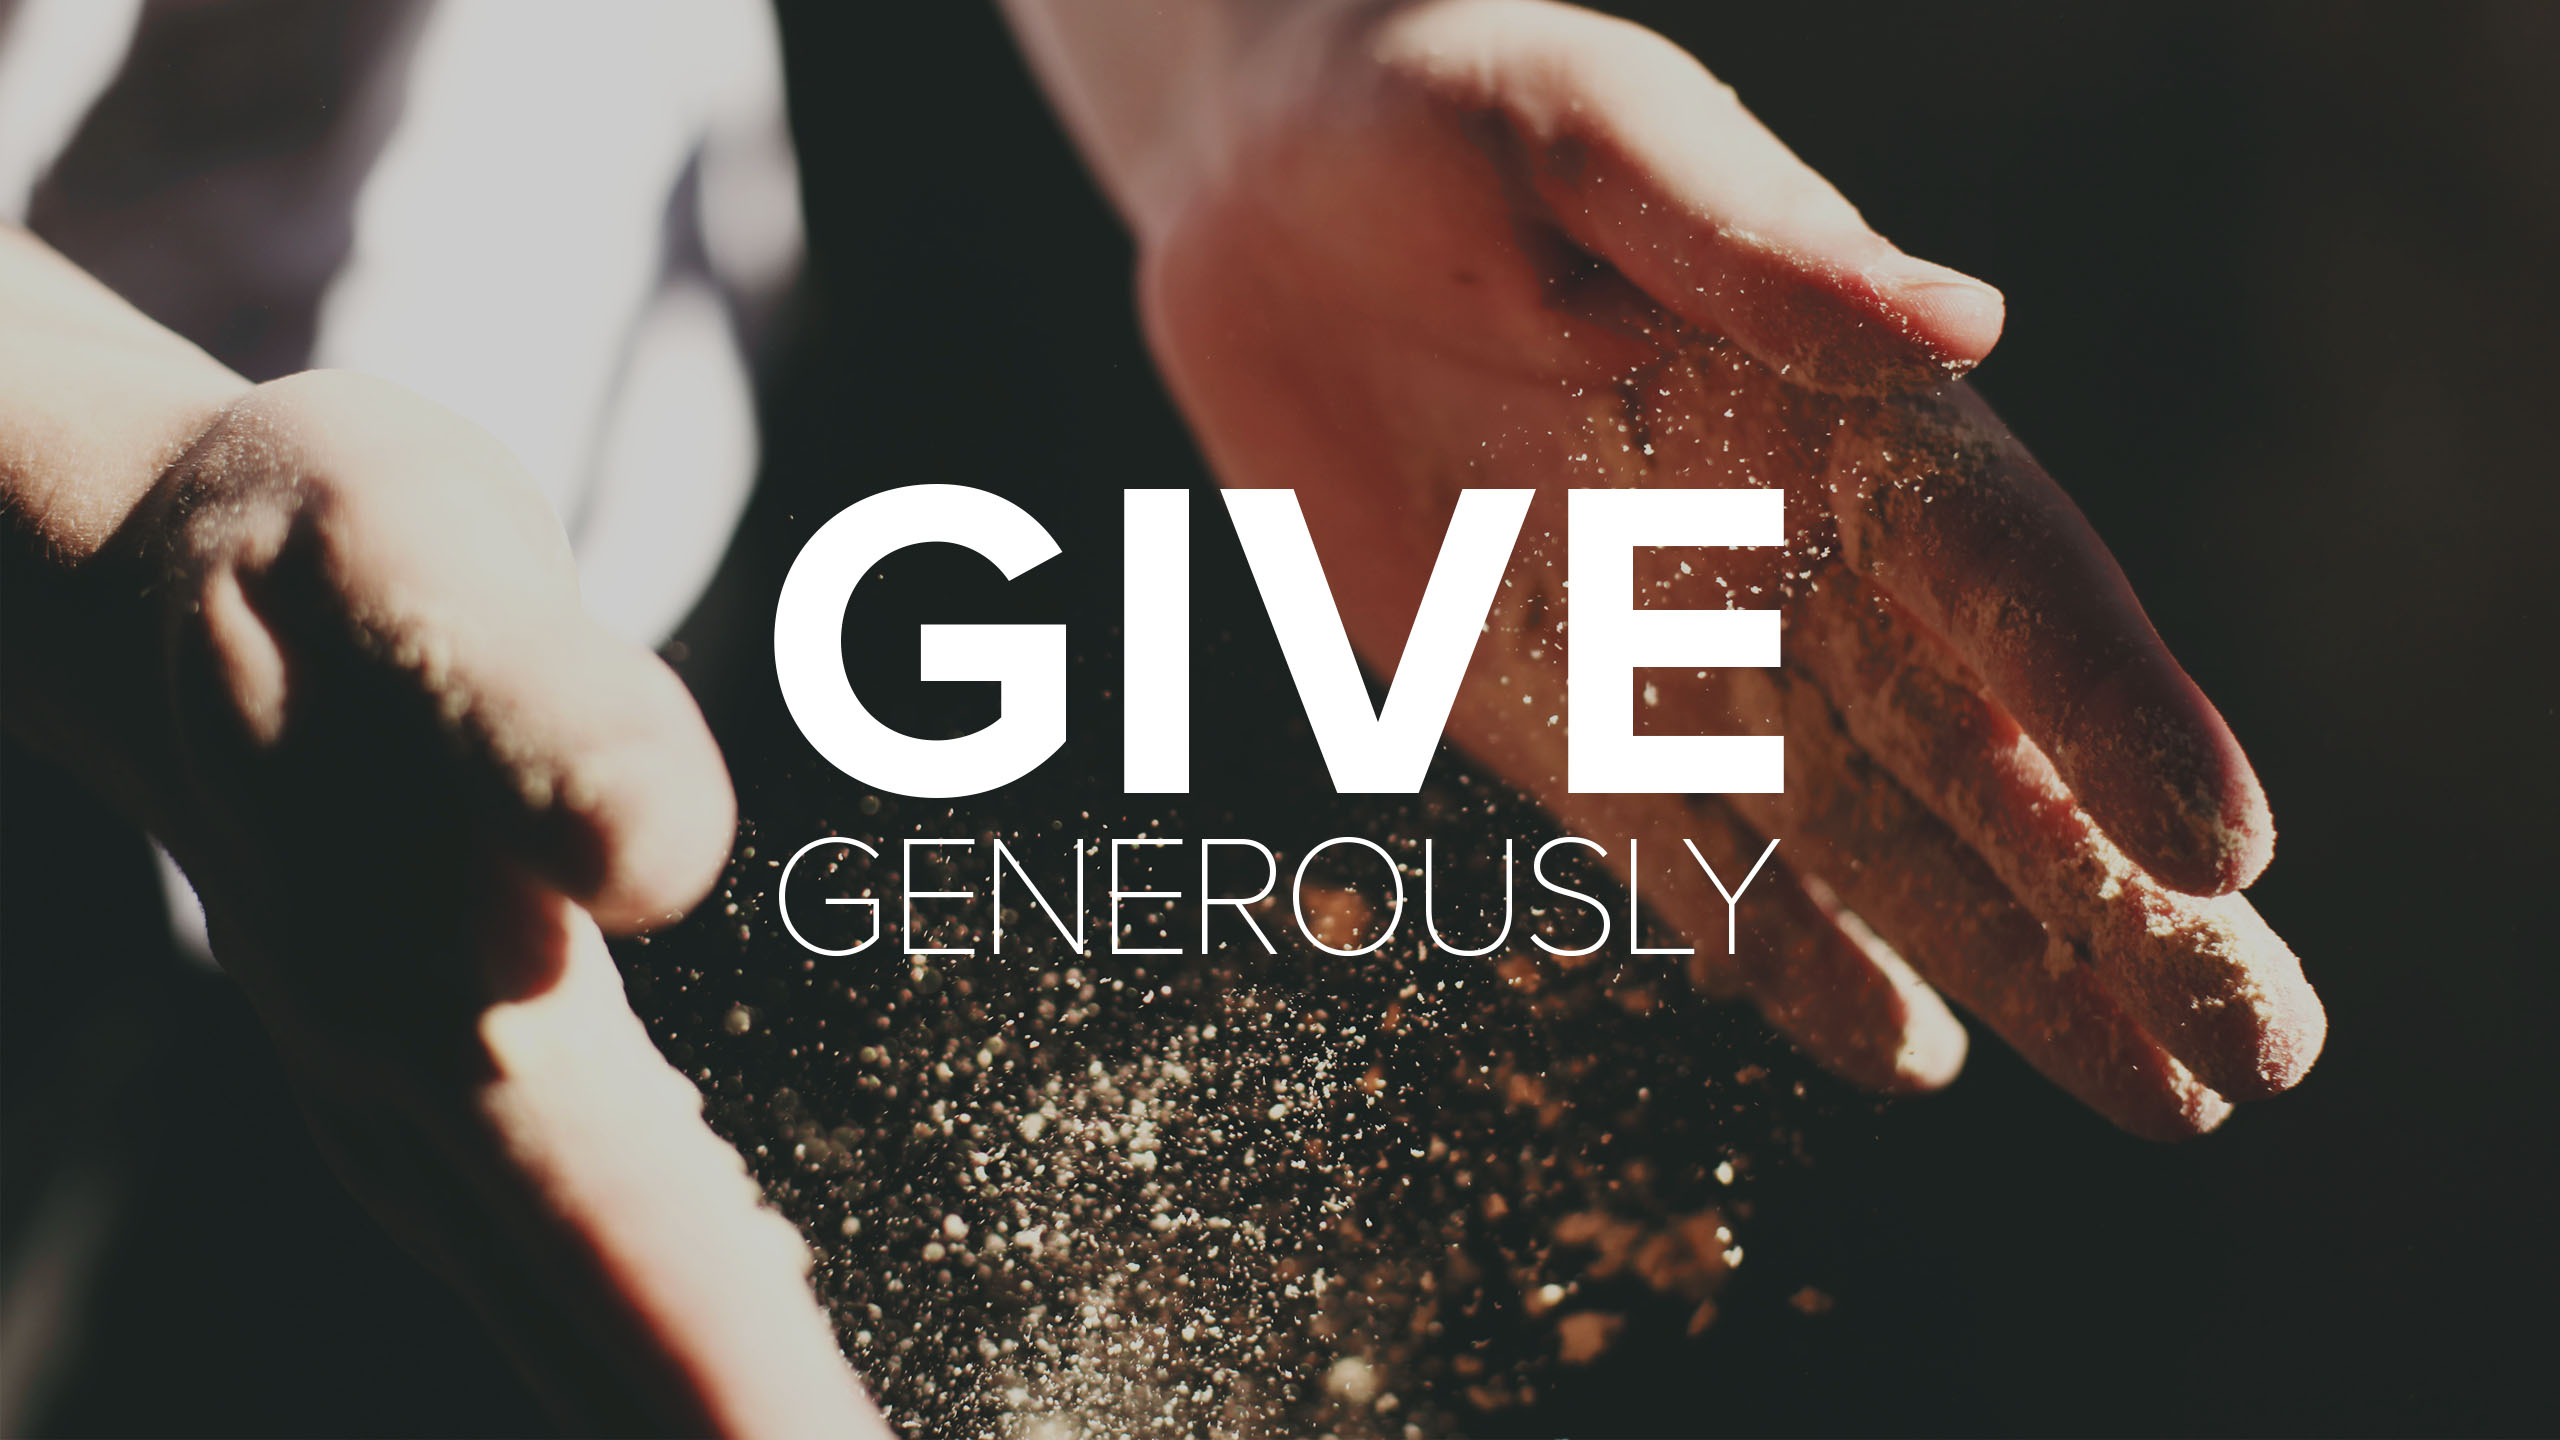 Give Generously - Christ's Commission Fellowship